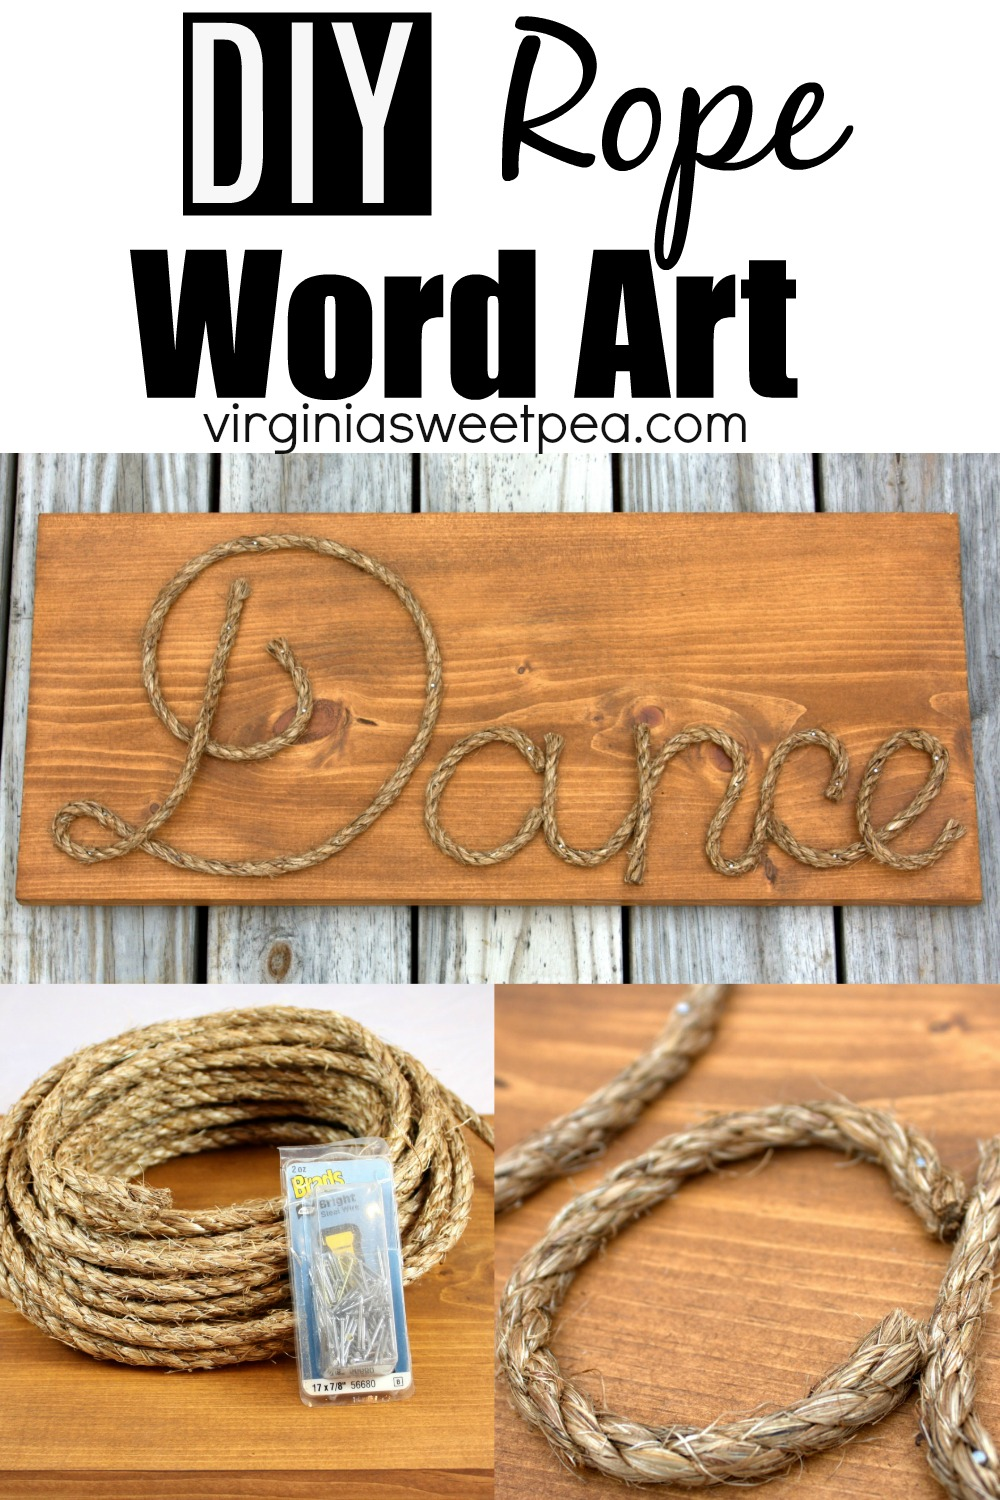 DIY Rope Word Art - Use rope to make personalized word art.  This is a fun project that makes a great gift.  #rope #ropeart #ropeidea #ropecraft via @spaula